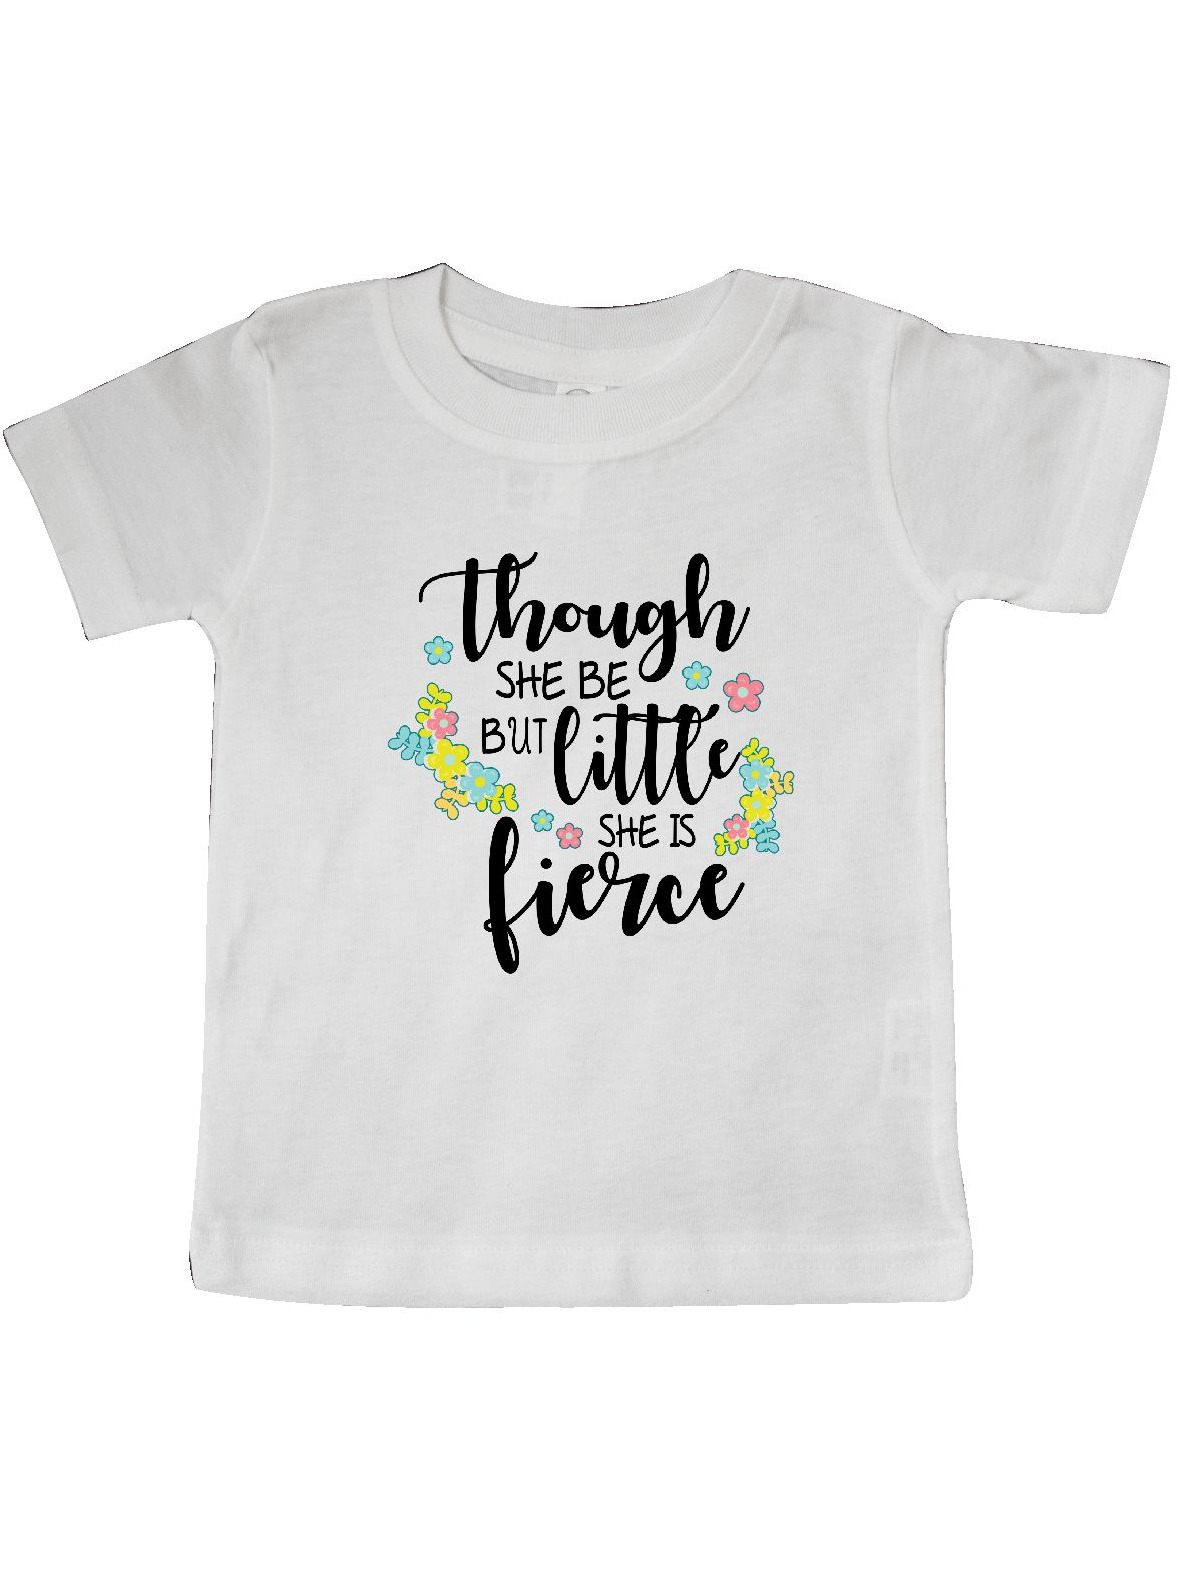 inktastic and Though She Be But Little She is Fierce Toddler T-Shirt